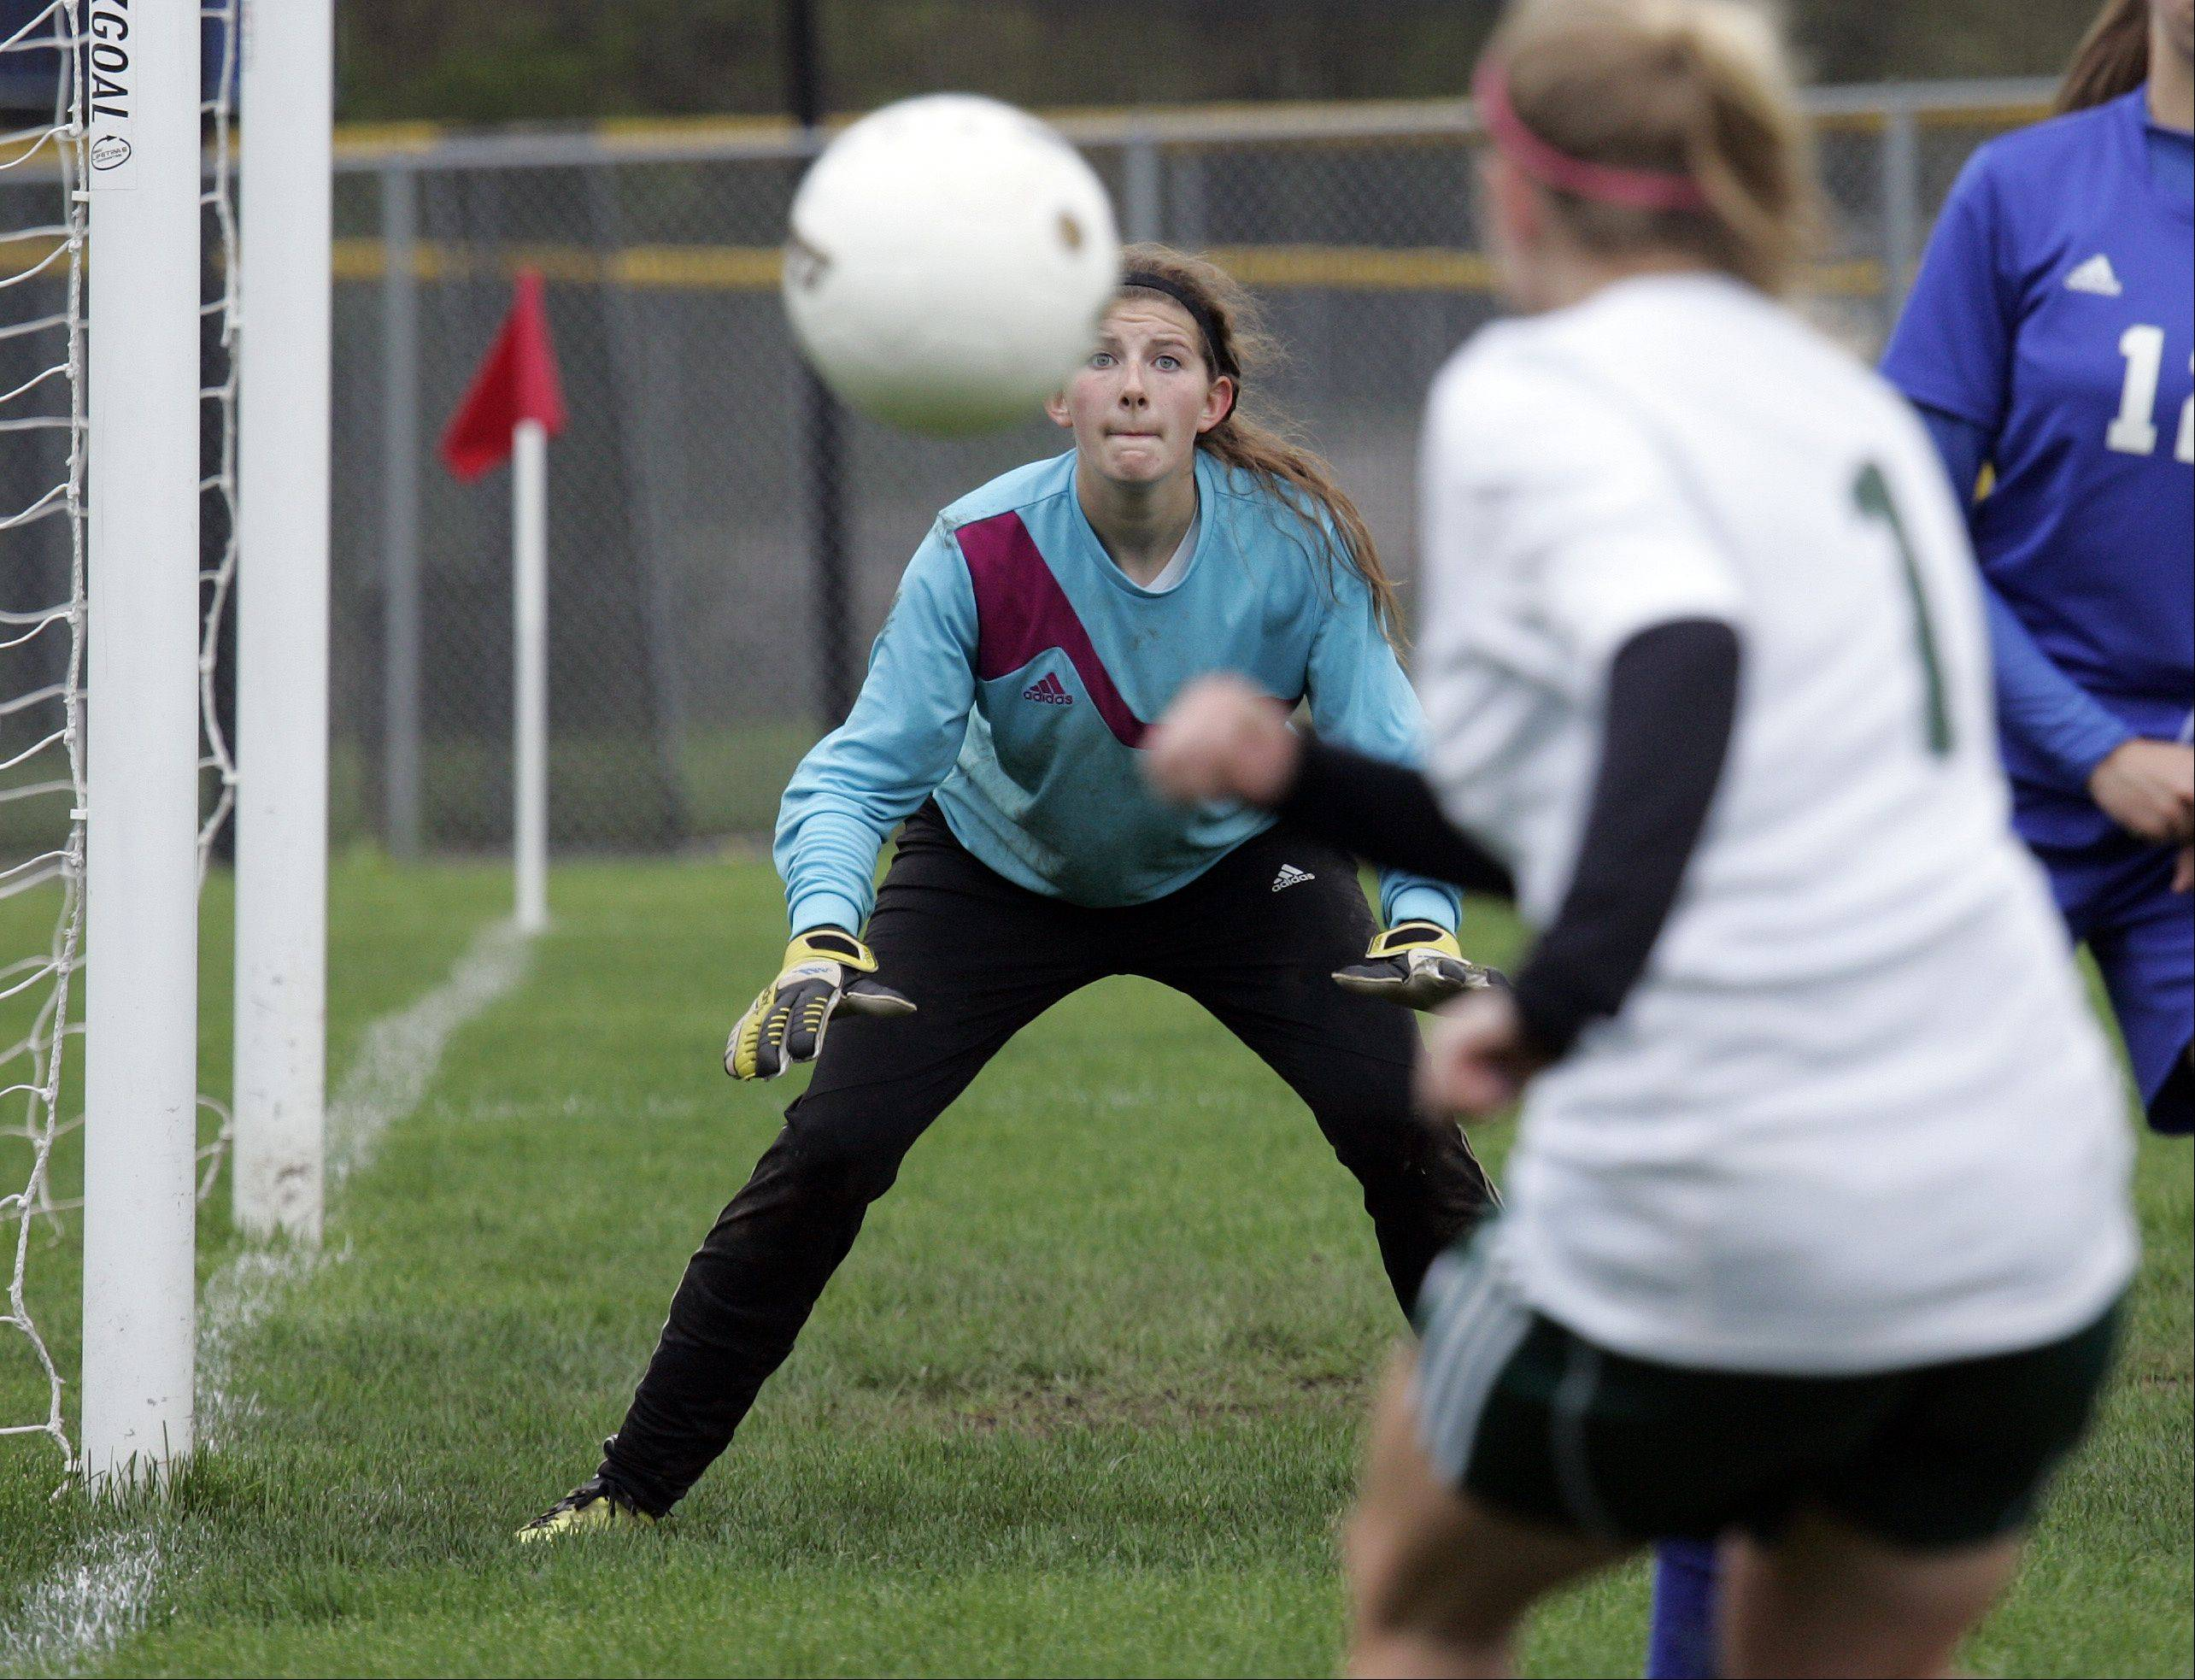 Westminster goalkeeper Savannah Dutcher keeps her eye on a shot by Corey Lepoudre of St. Edward Saturday.